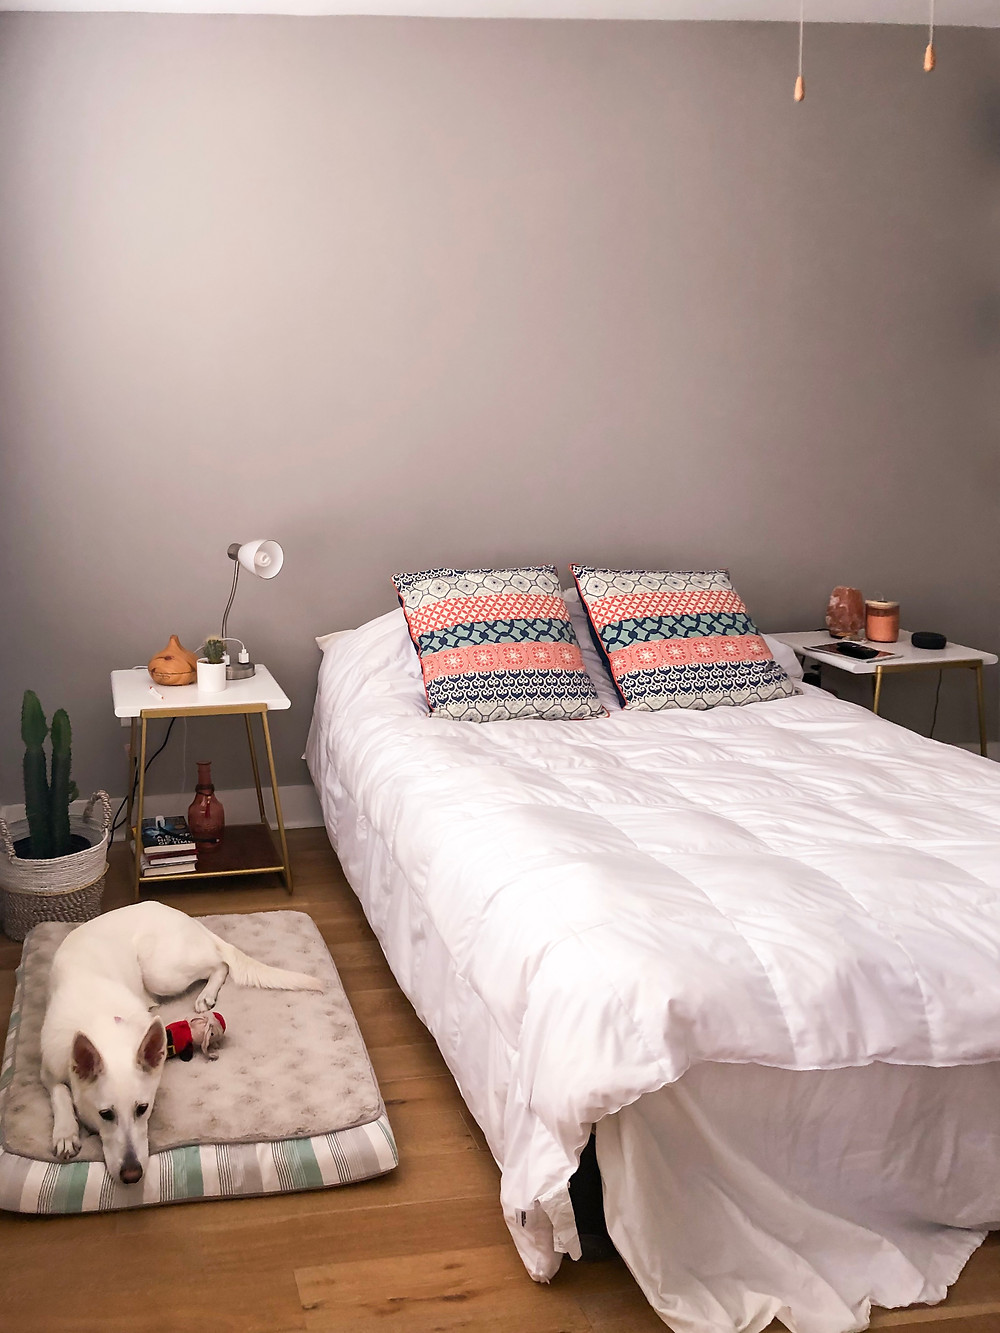 Bedroom Beauty: 7 Steps to a Stunning Sleep Space